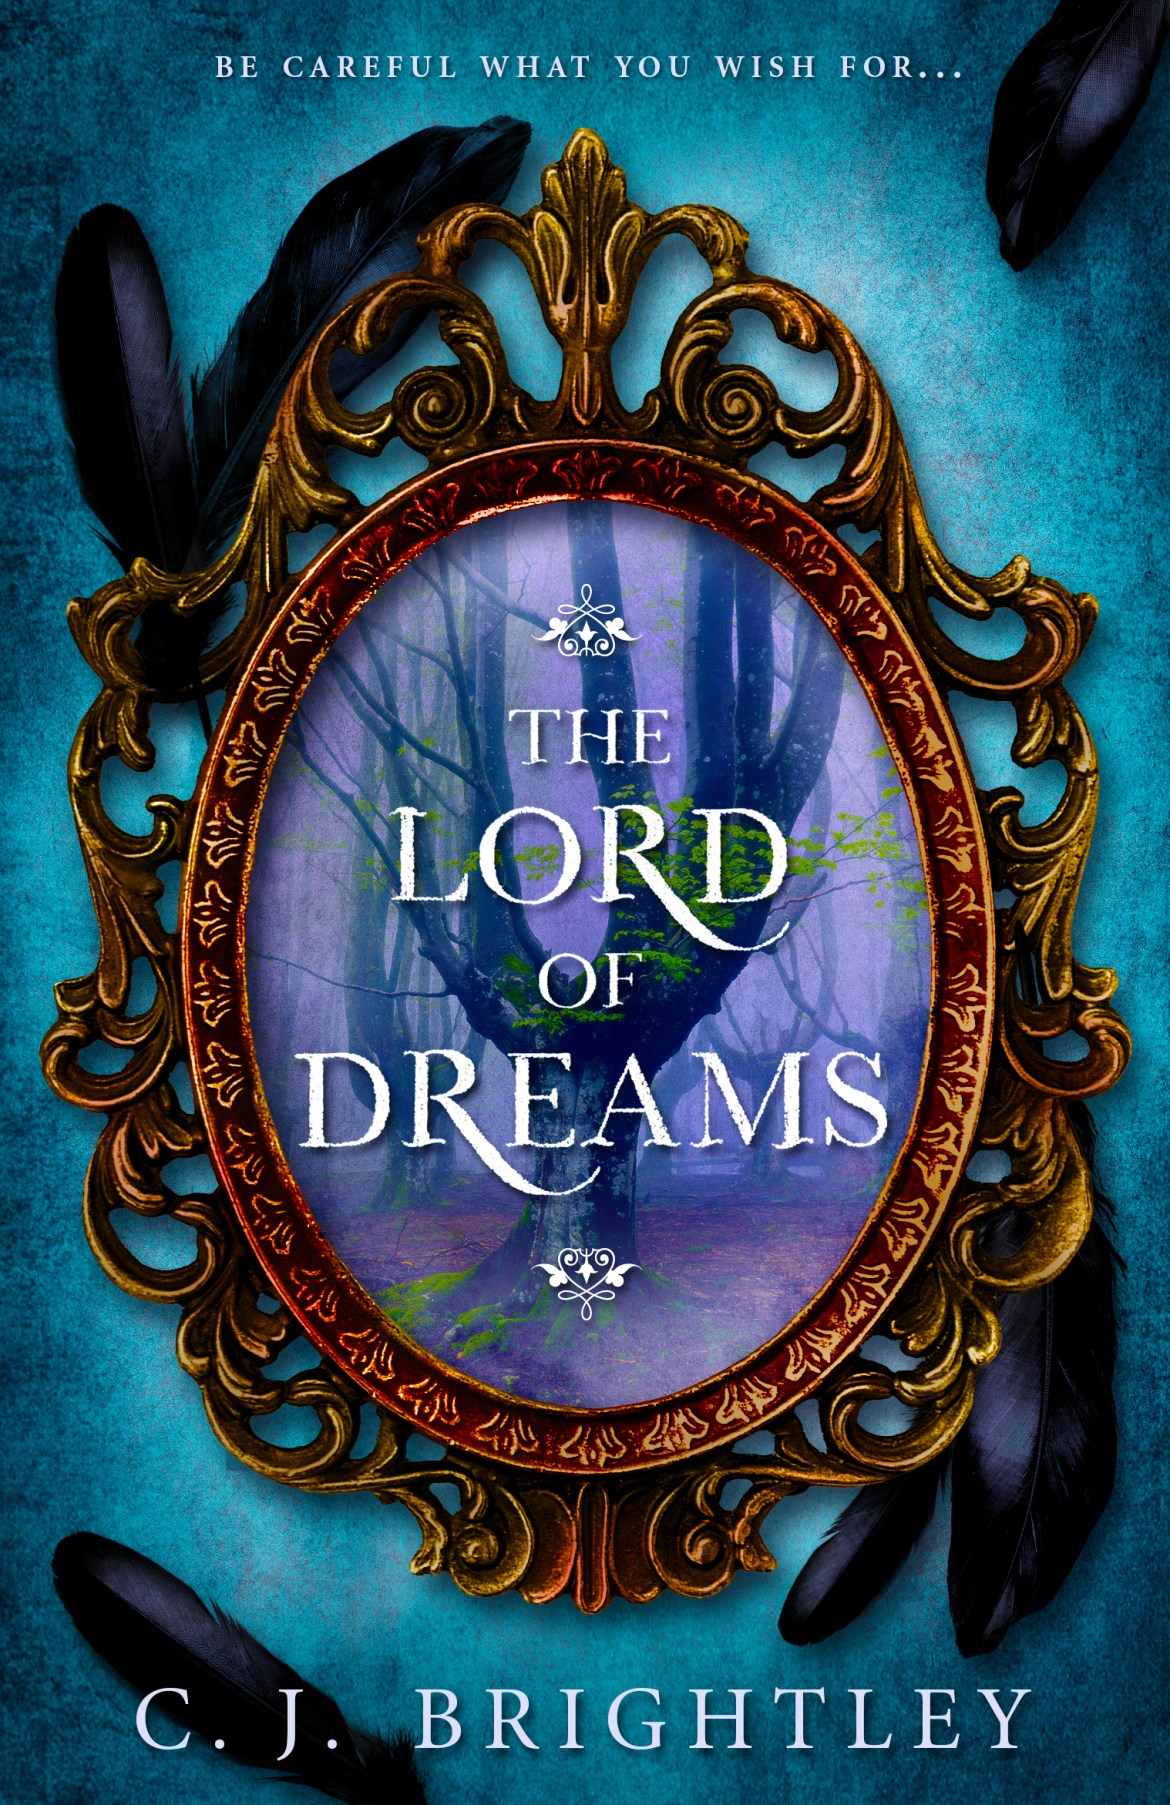 The Lord of Dreams by C. J. Brightley cover image